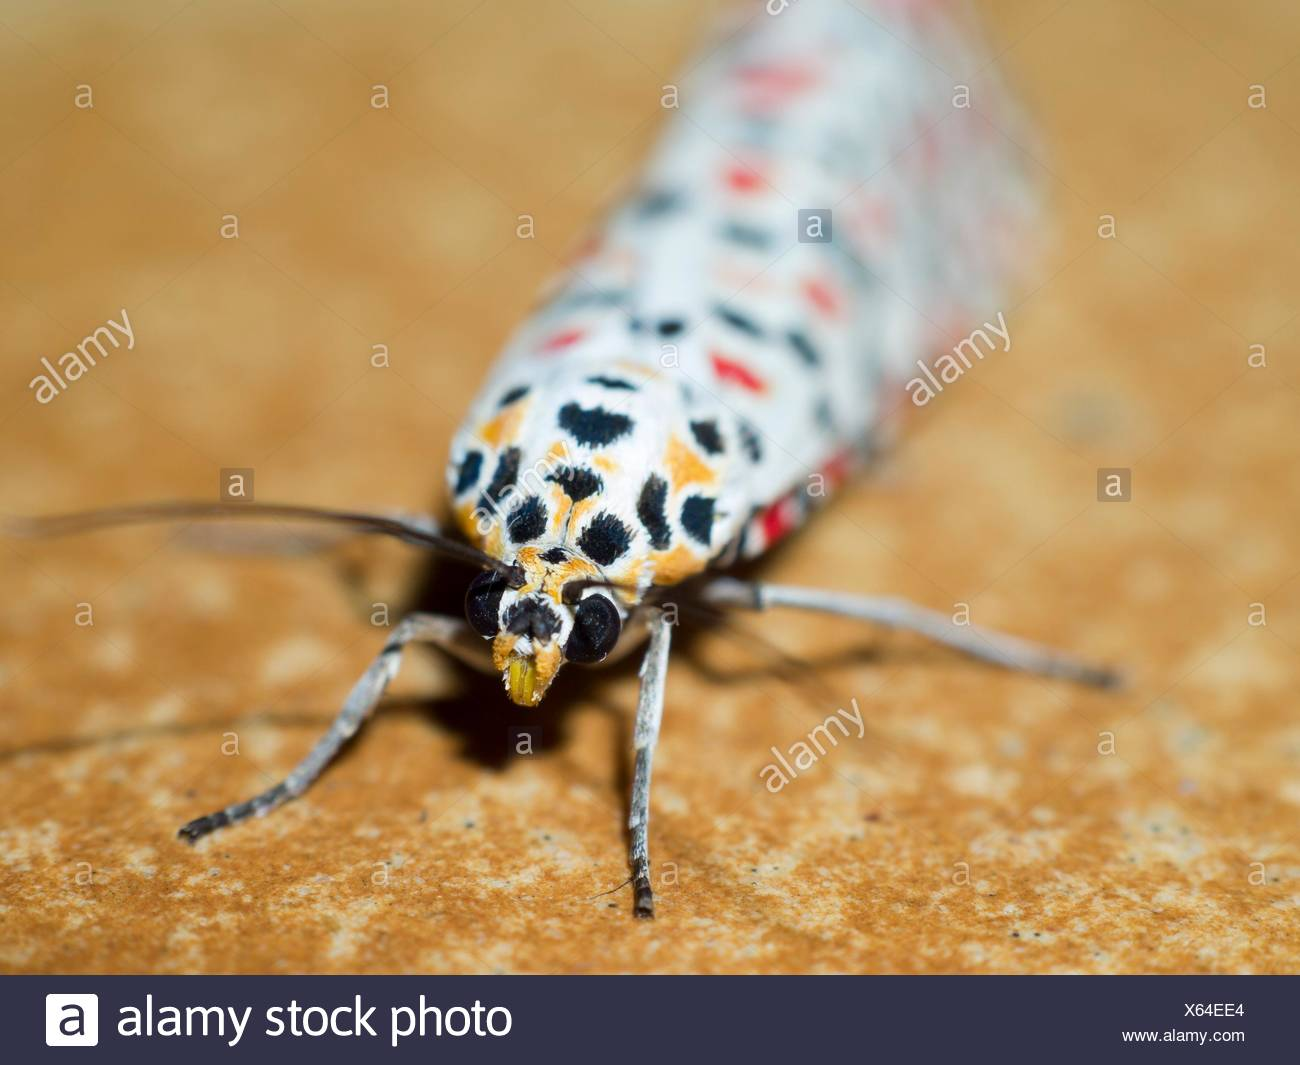 Colorful lepidopterans. Insect. Arthropoda. Macro Stock Photo